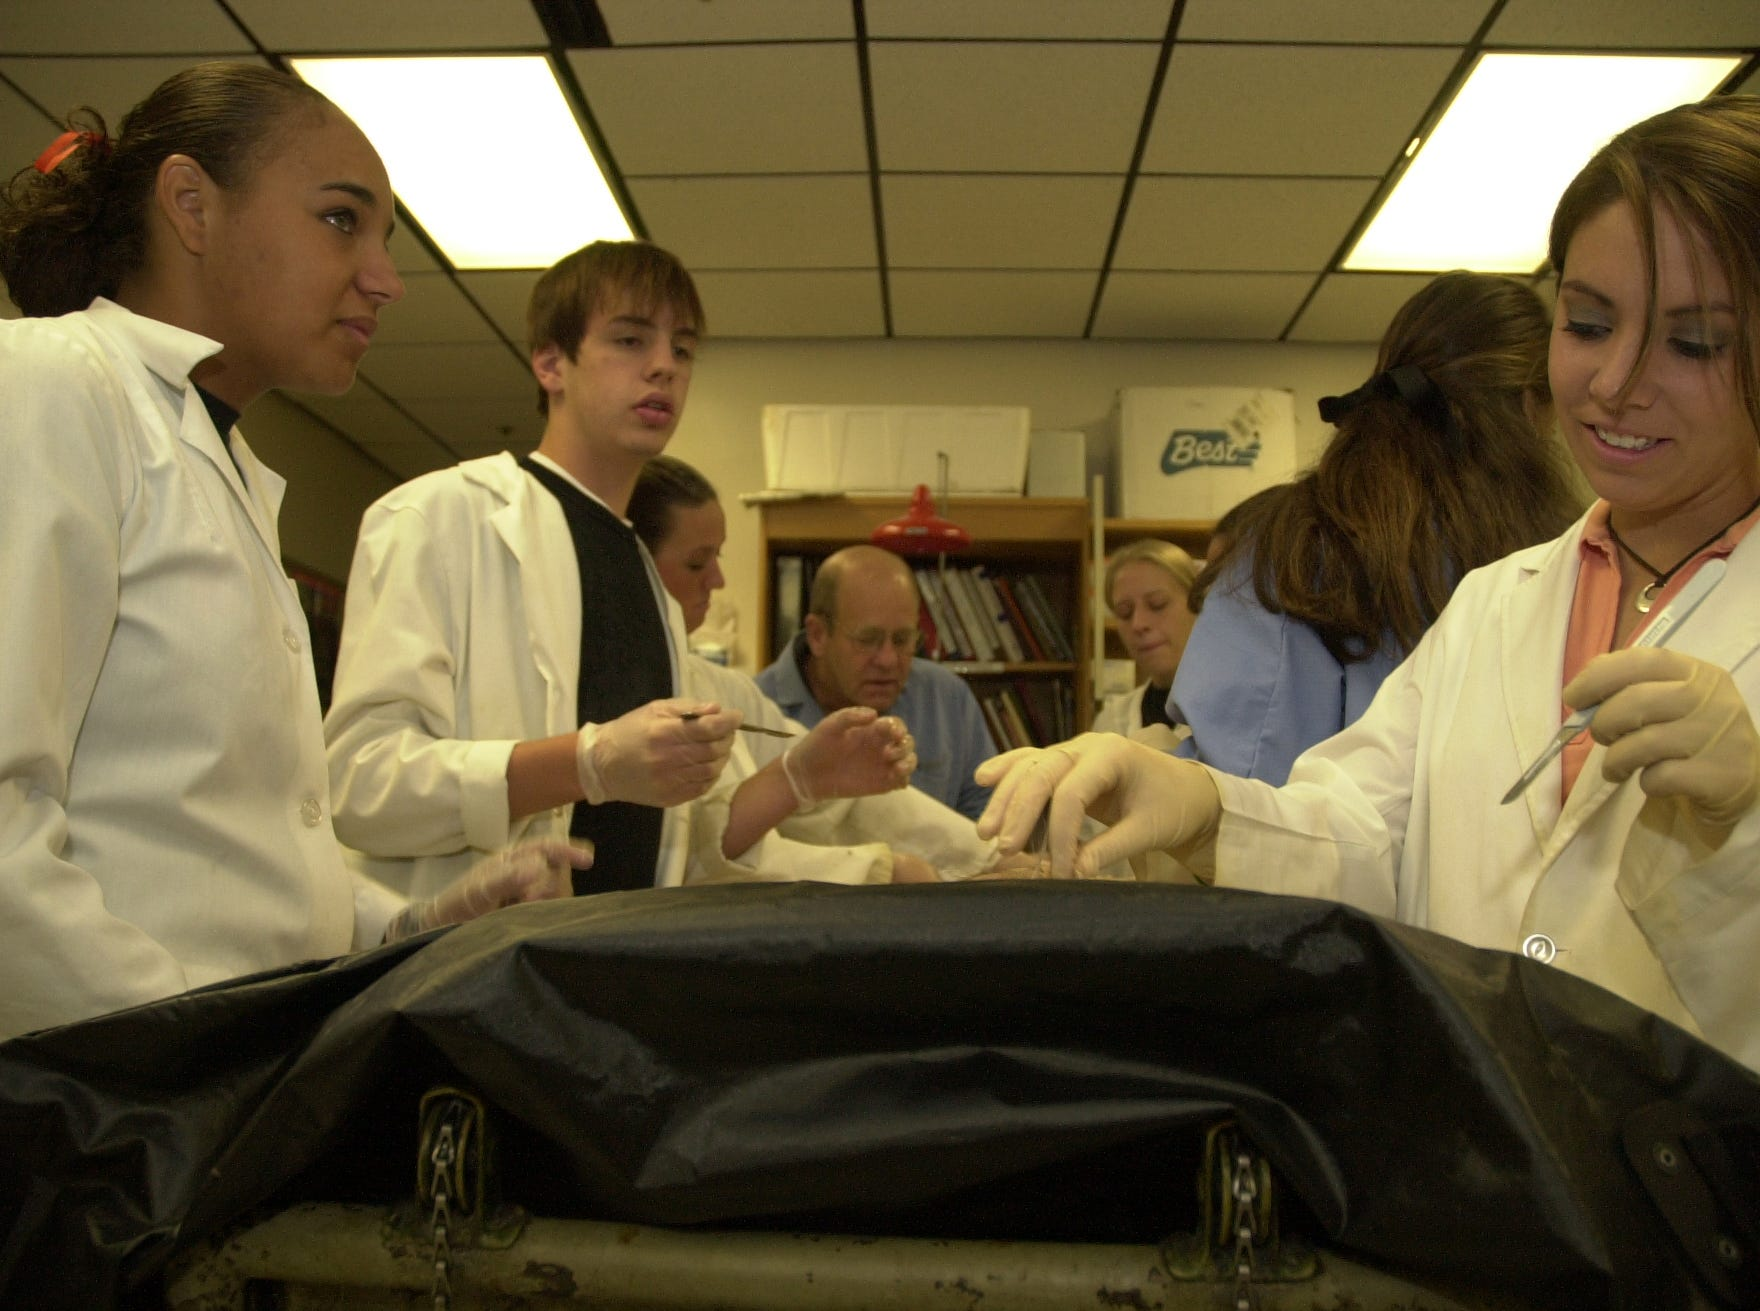 Physiology students at Clinton High School dissect a human cadaver with the help of their teacher, Dr. Harry ``Whitey'' Hitchcock, in background.  From left: Shere Ramsey, Tyler Morrow, Rachel Geier, Hitchcock, Chantal Mings, Amanda Hatton, back to camera, and Kaylee Webster.